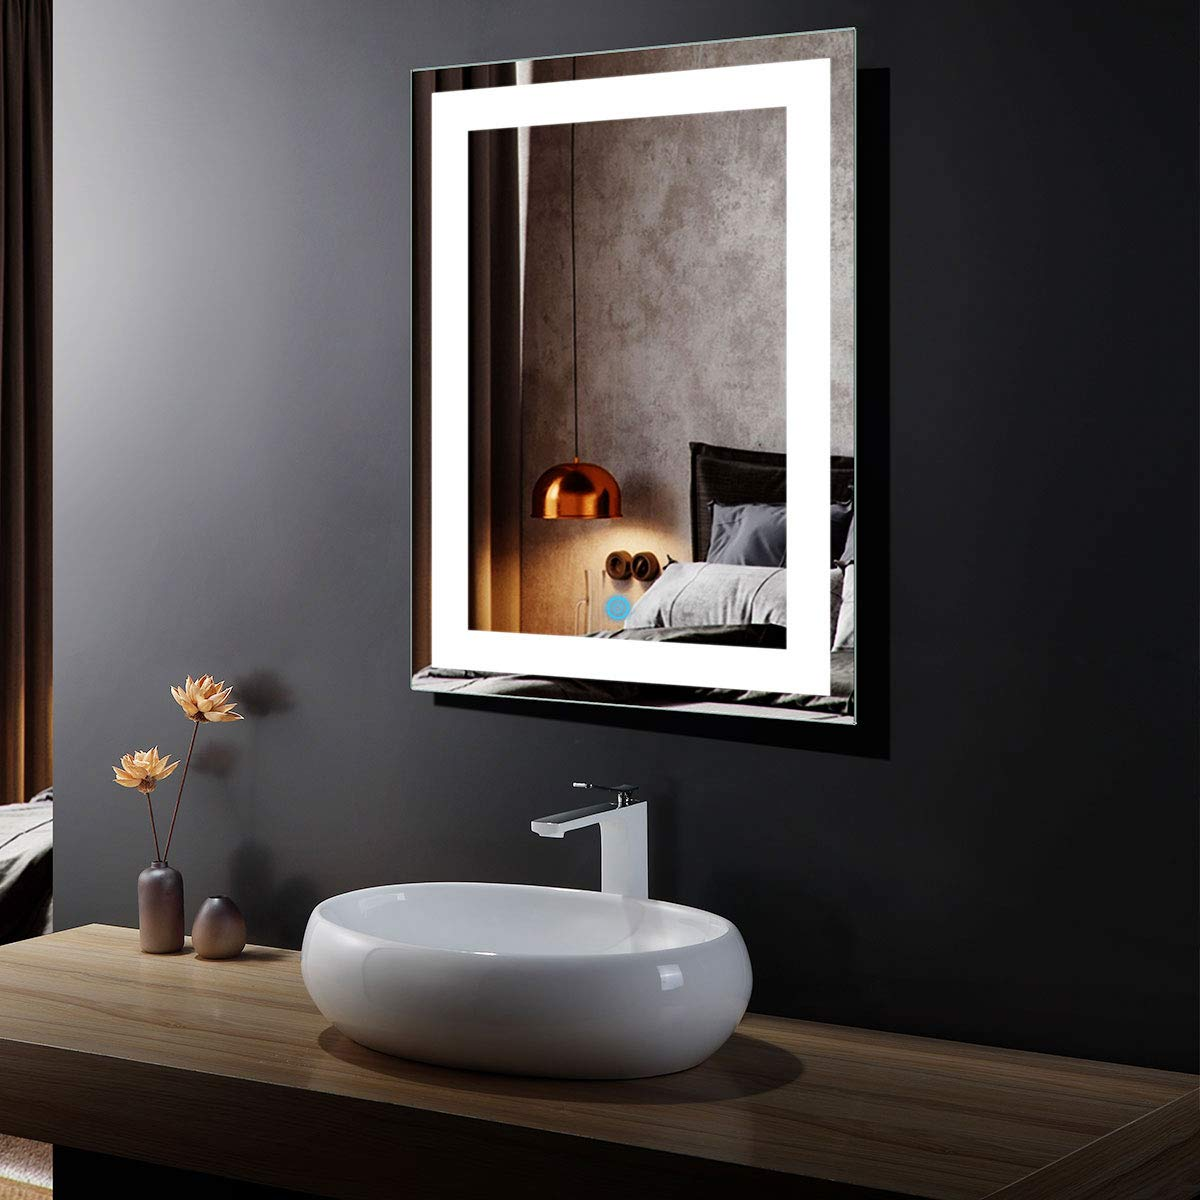 DP Home 24'' LED Lighted Illuminated Bathroom Vanity Wall Mirror with Touch Sensor, Vertical Rectangle White Mirrors 24 x 32 in E-CK010 by DP Home